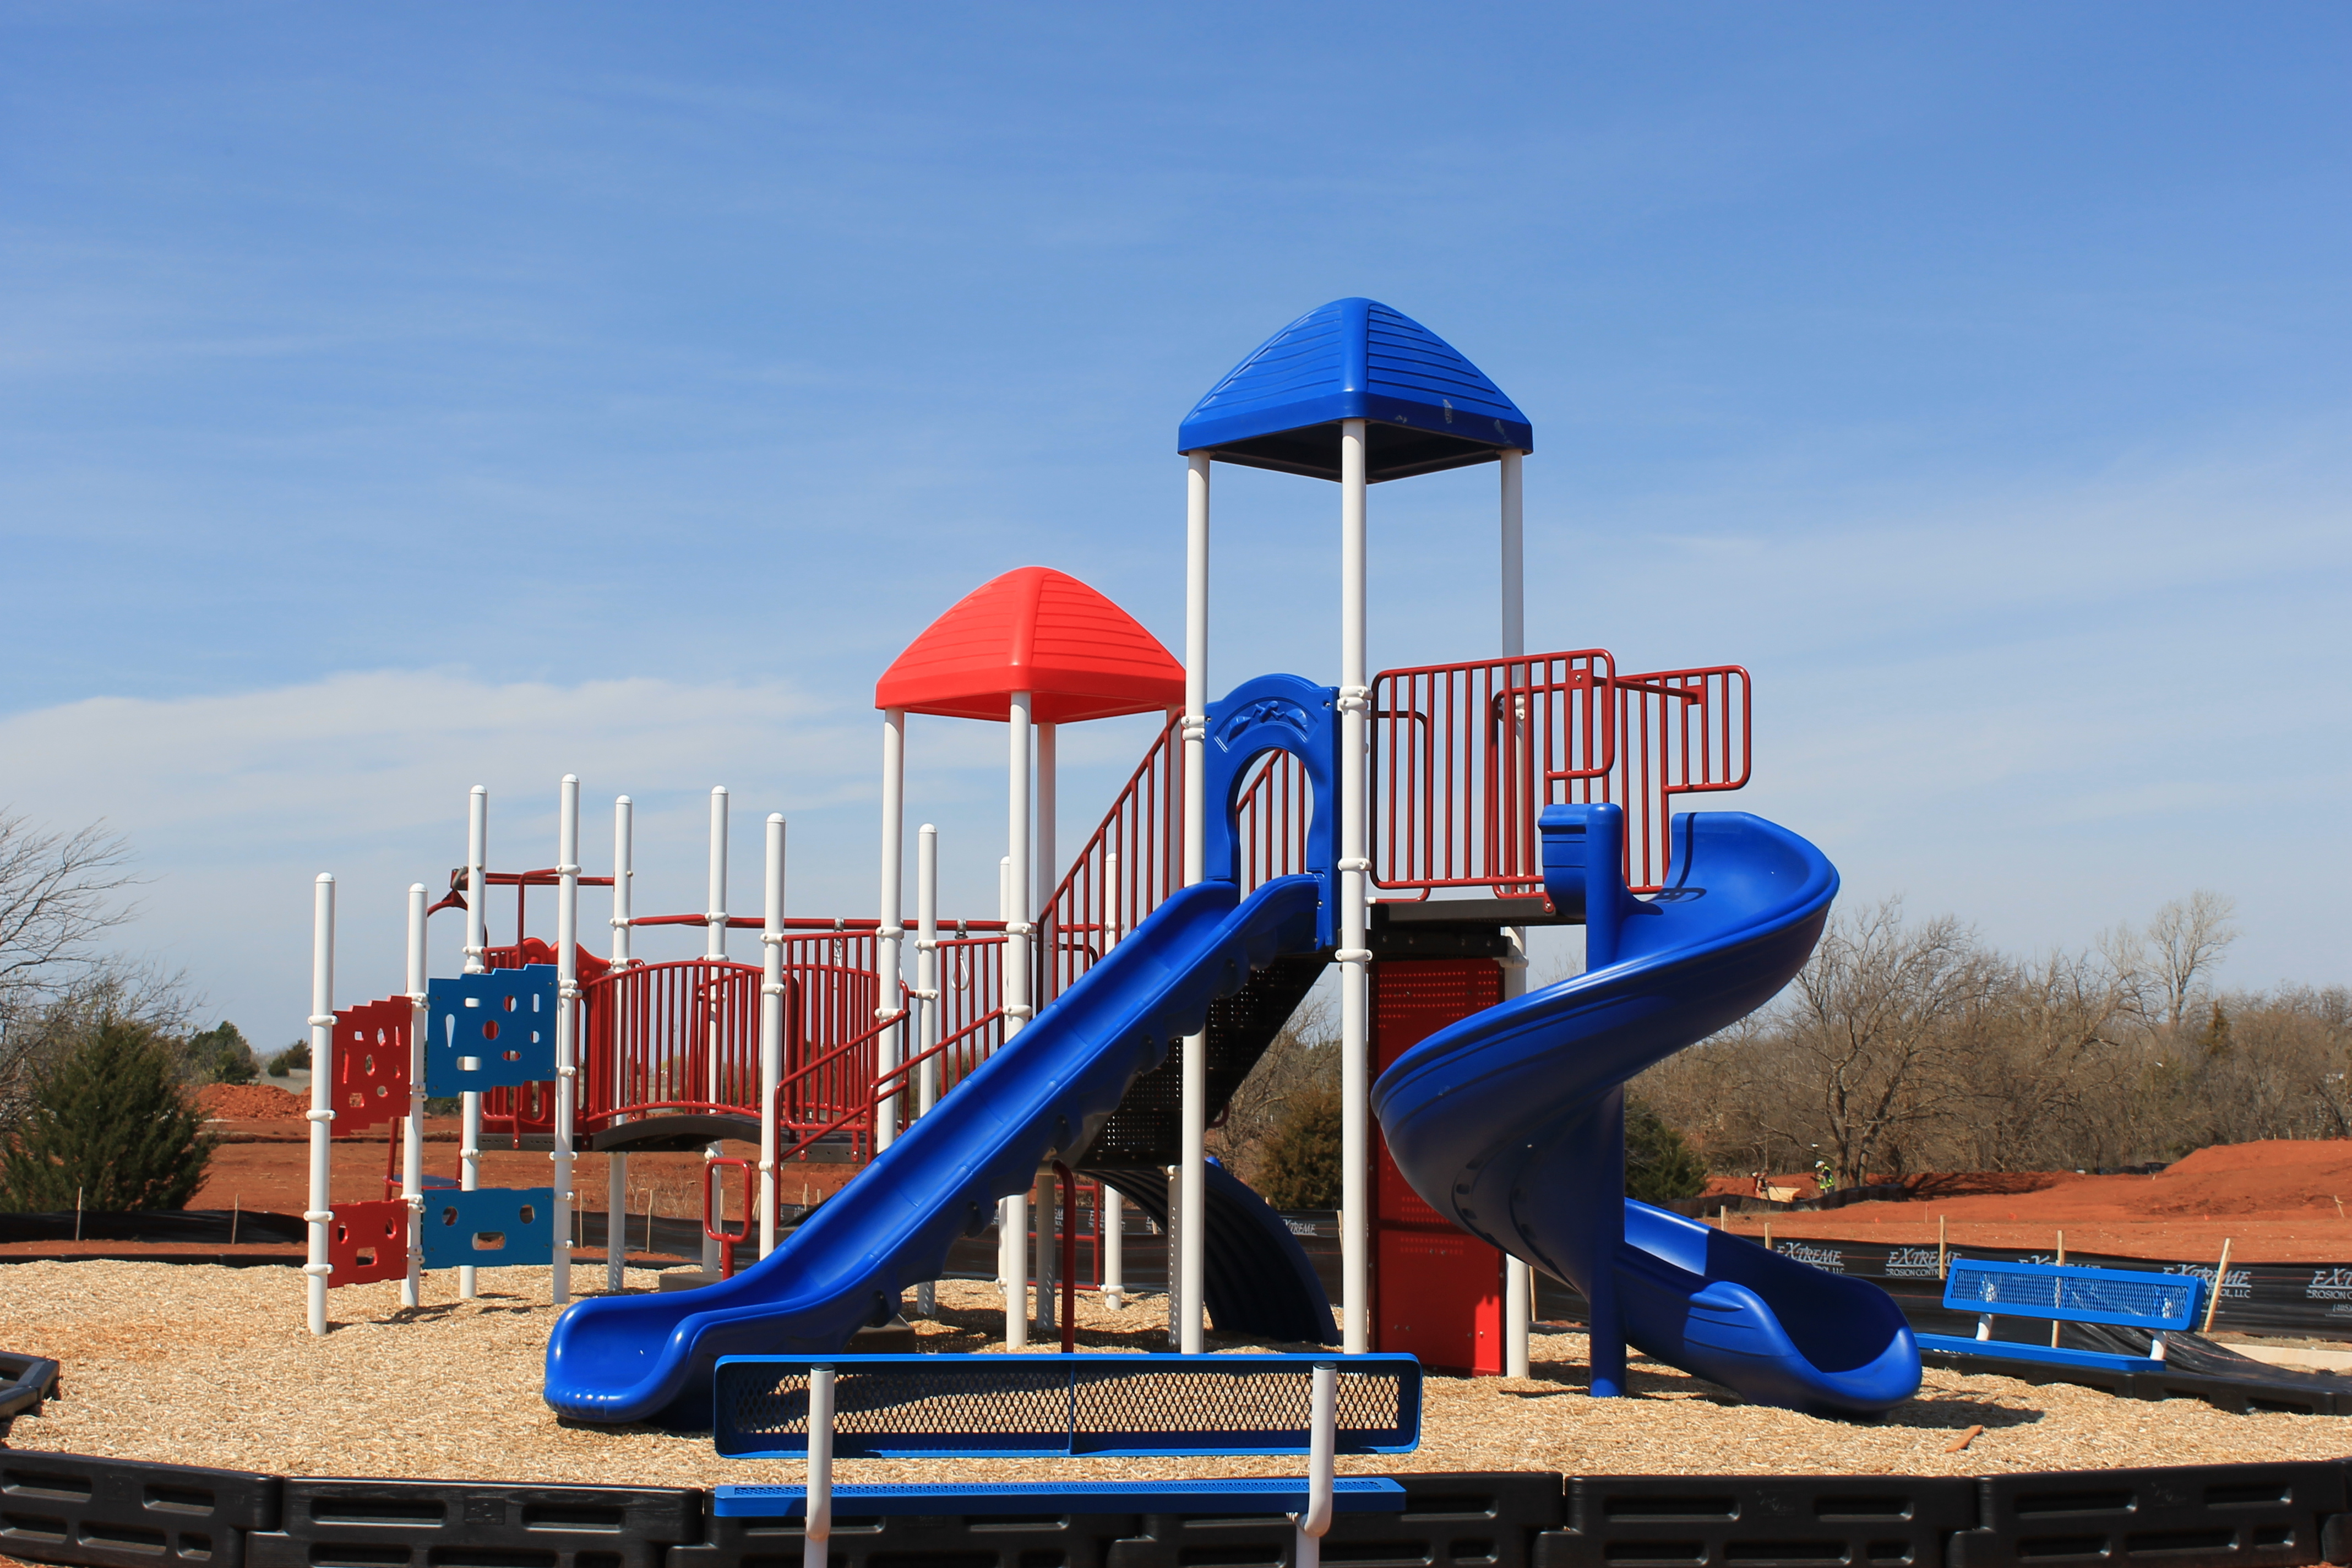 Noahs Park and Playgrounds, LLC image 18